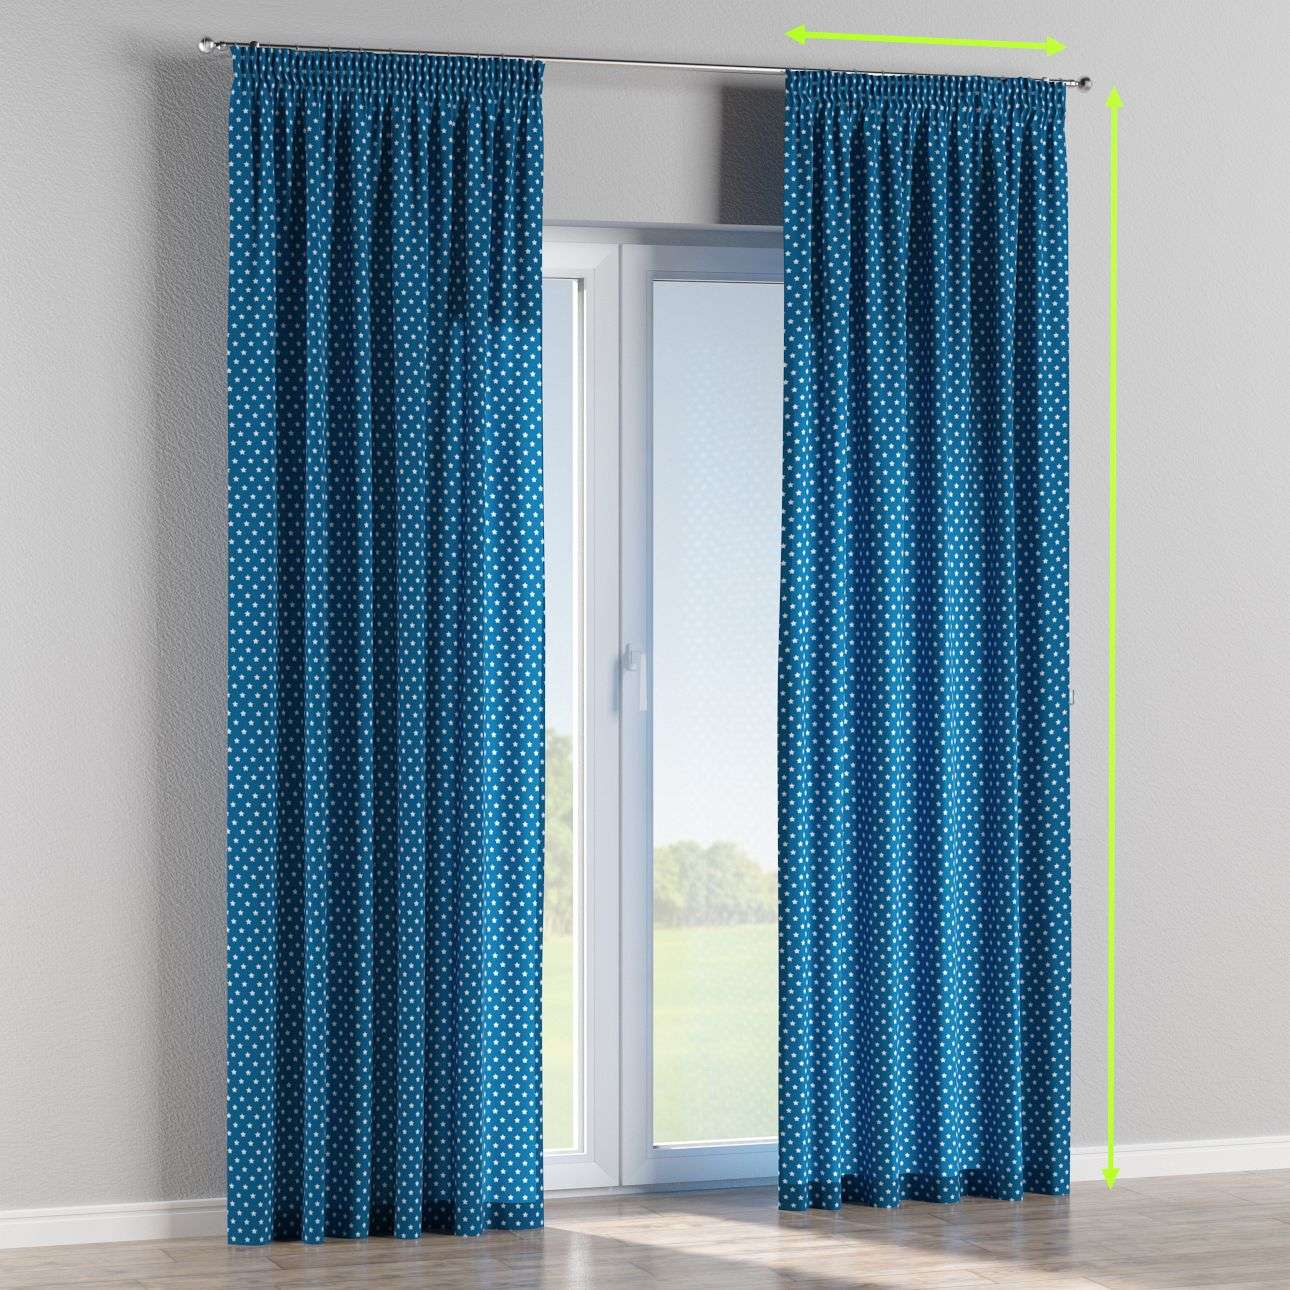 Pencil pleat curtains in collection Ashley, fabric: 137-72